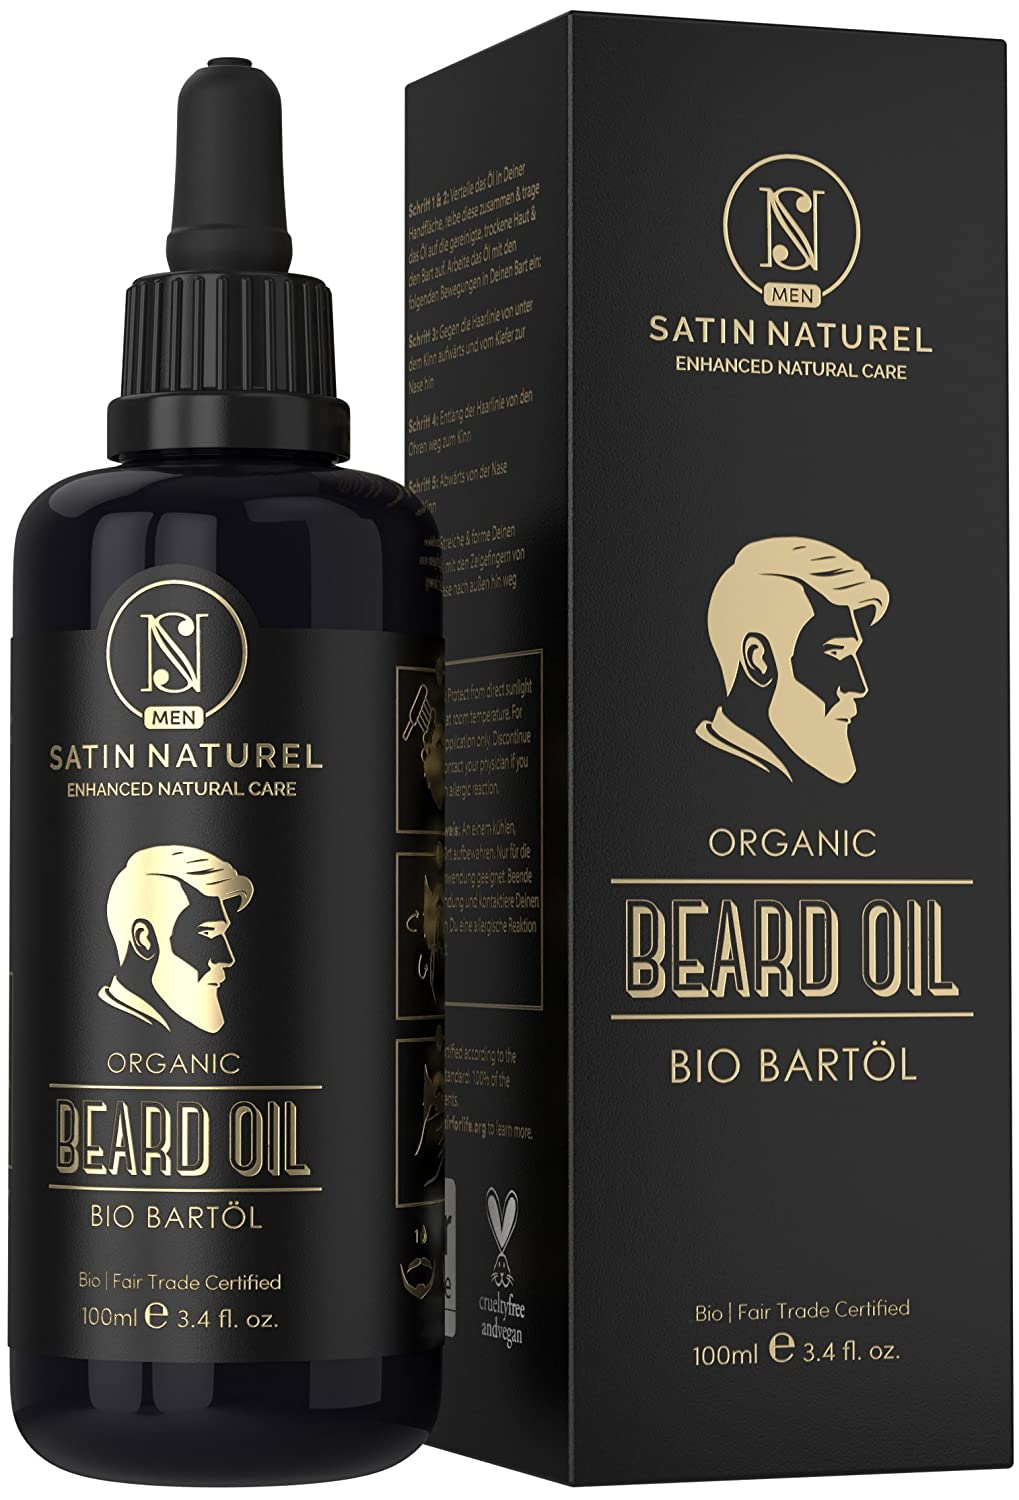 Beard Oil Of Fair Trade Certified Organic Quality For Your Beard Care/All Natural Nourishment For A Healthy Beard/In 100ml Glass Bottle/Vegan & Made In Germany Del Decus Enterprises Ltd.